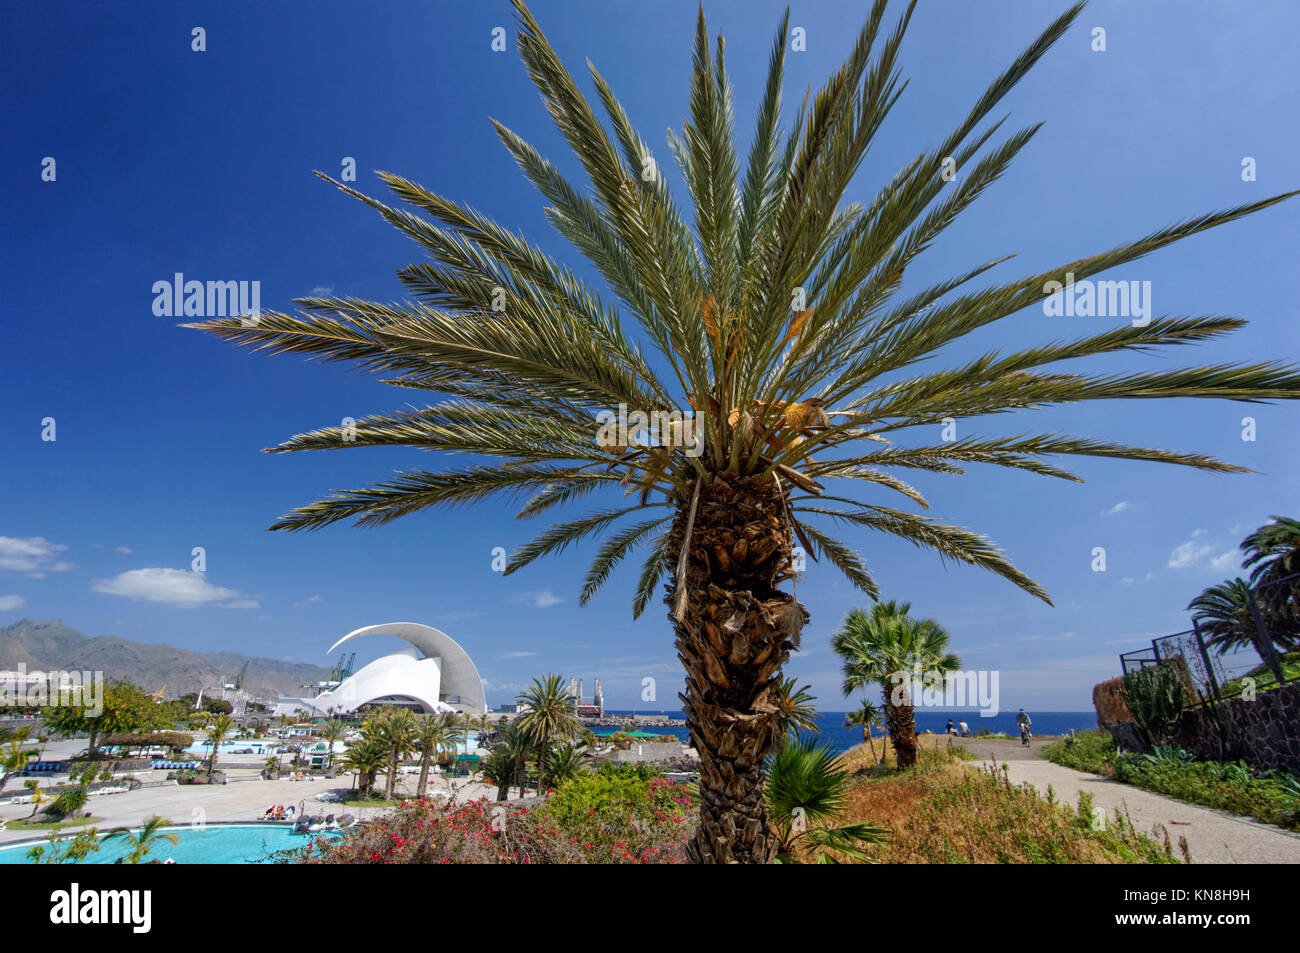 Auditorium by  Santiago Calatrava , Parque Maritimo, Santa Cruz, Tenerife, Canary Islands, Spain, Europe - Stock Image